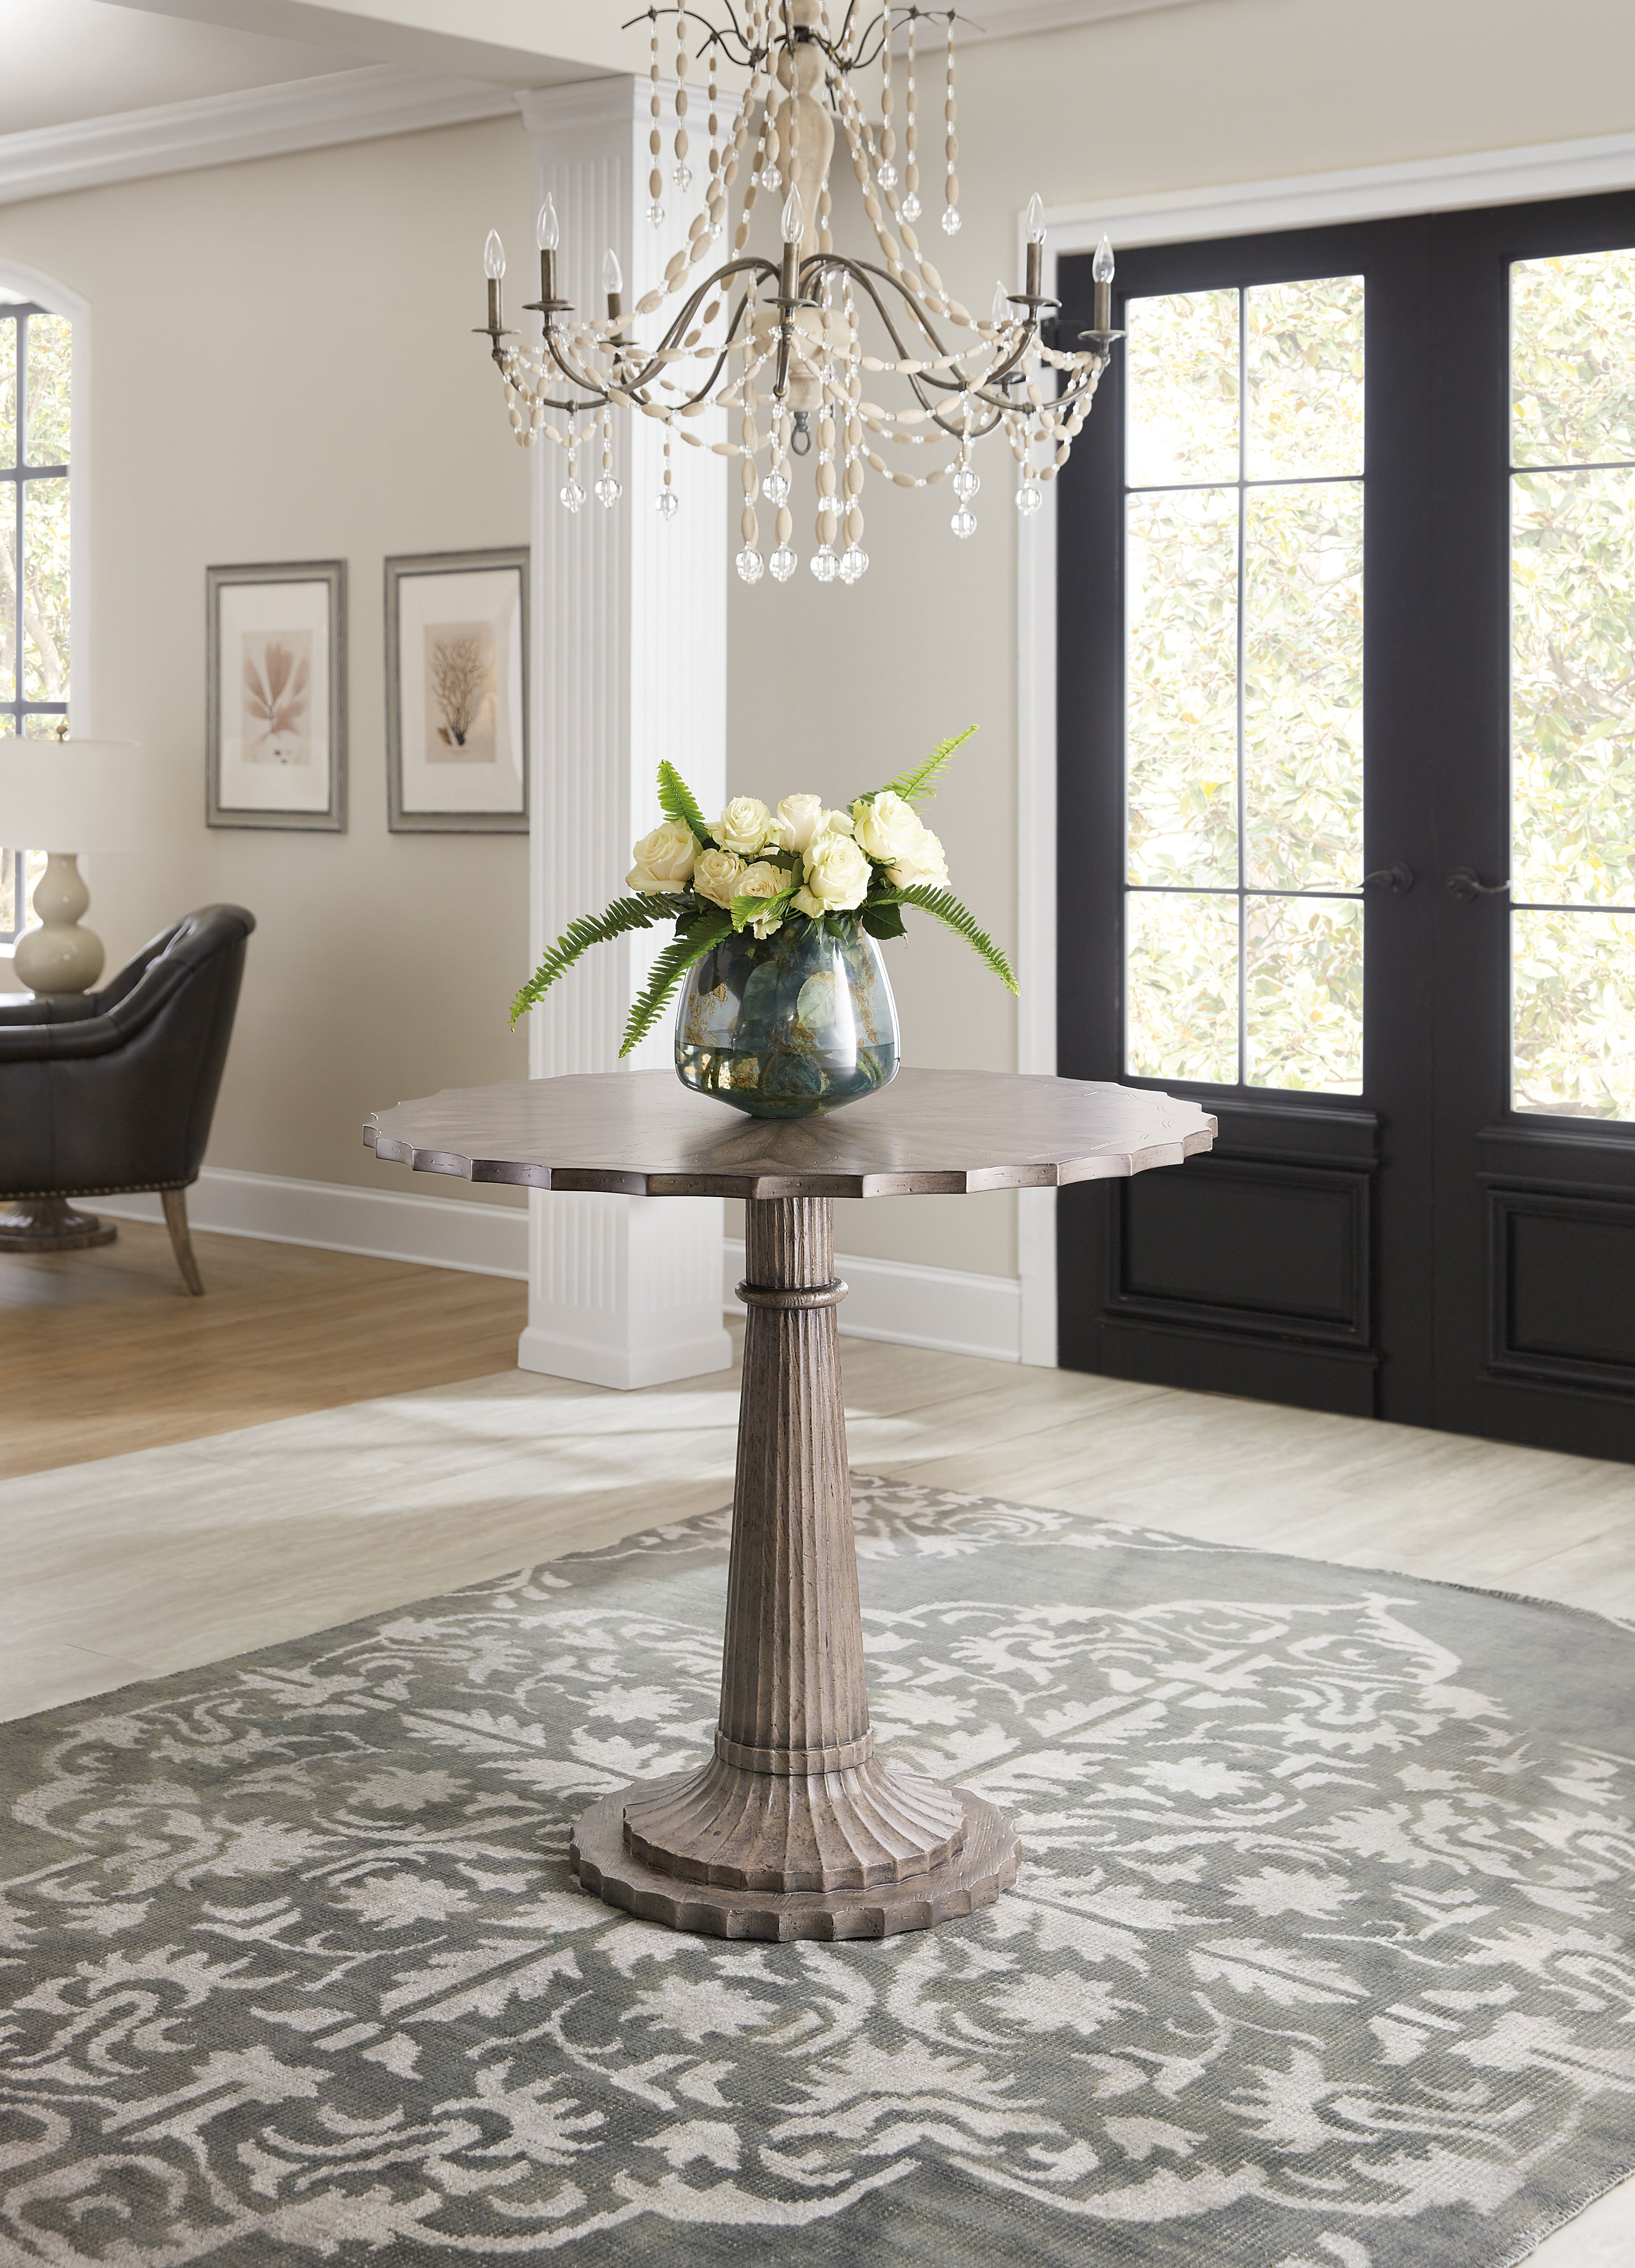 hooker furniture dining room woodlands foyer accent table whole outdoor living design bunnings garden threshold between carpet and tile concrete slab small round glass mirrored